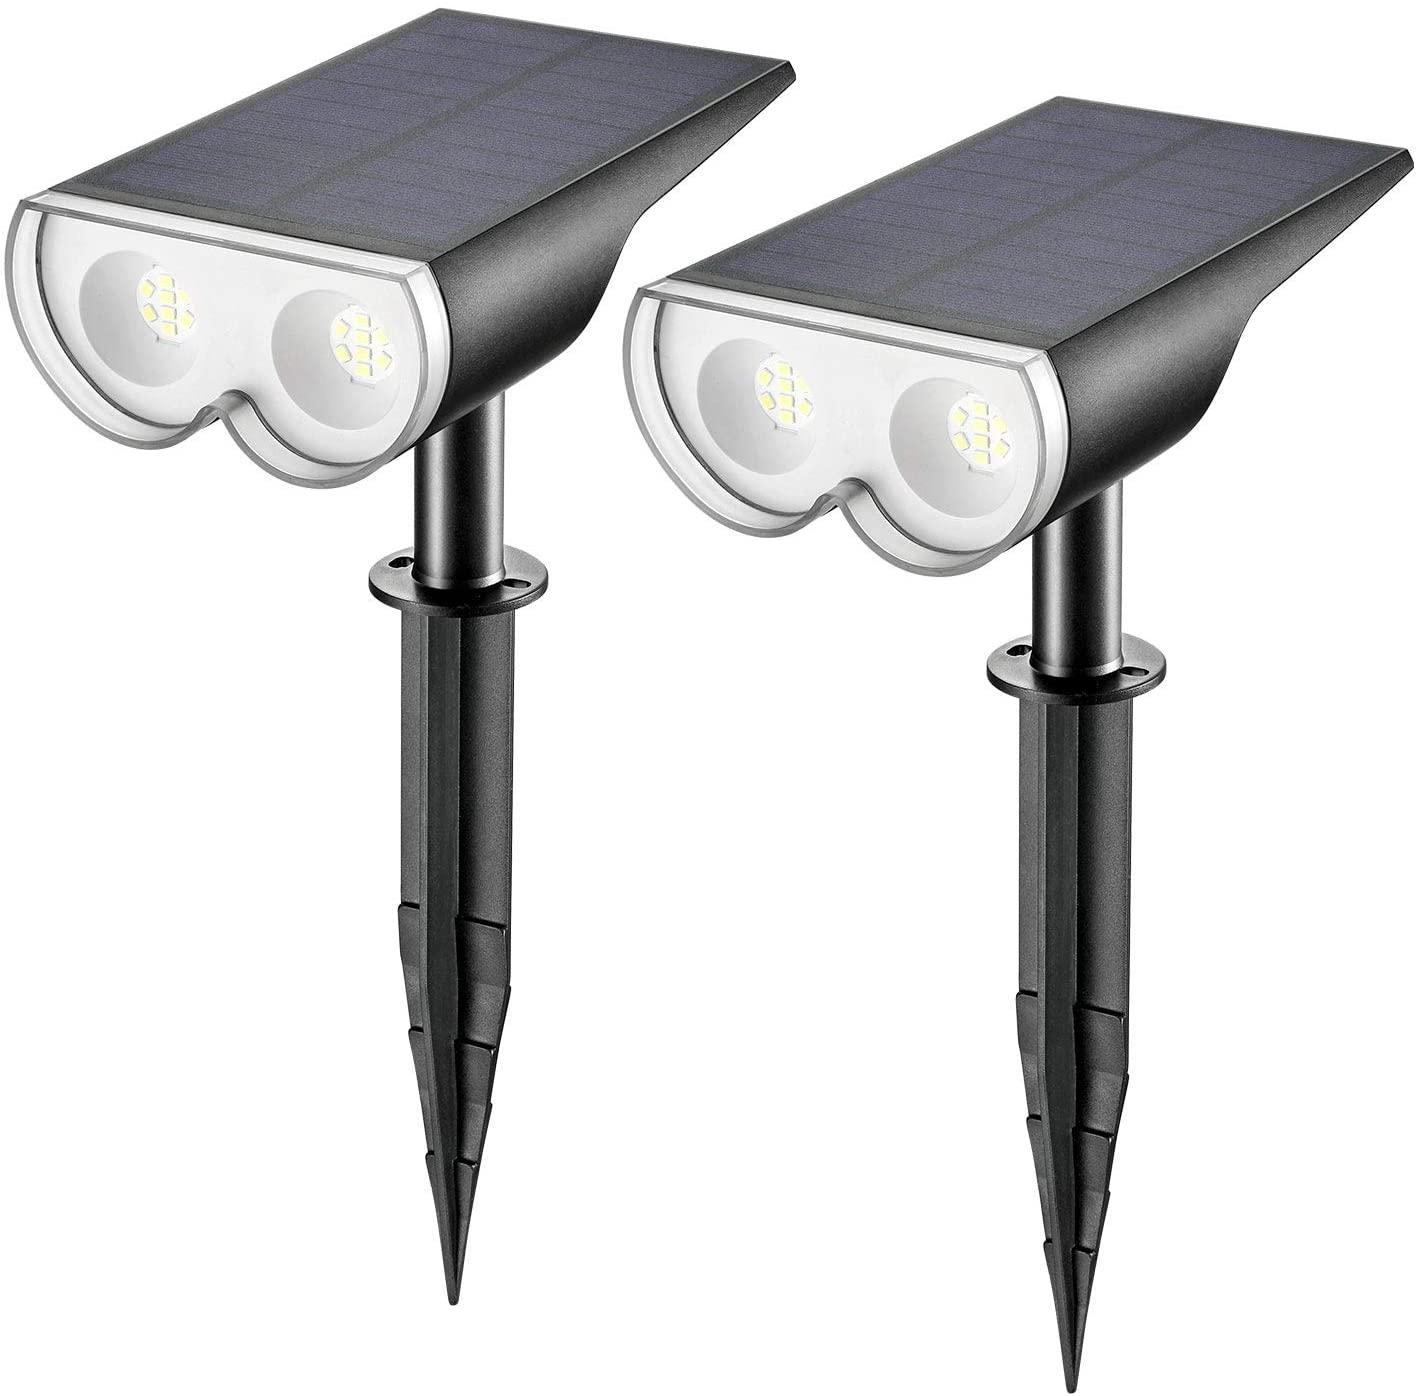 Linkind 16 LEDs Solar Landscape Spotlights, Dusk-to-Dawn IP67 Waterproof Solar Powered Spot Lights, 6500K Daylight White, Outdoor Wall Lights for Garden Yard Driveway Porch Walkway, 2 Pack